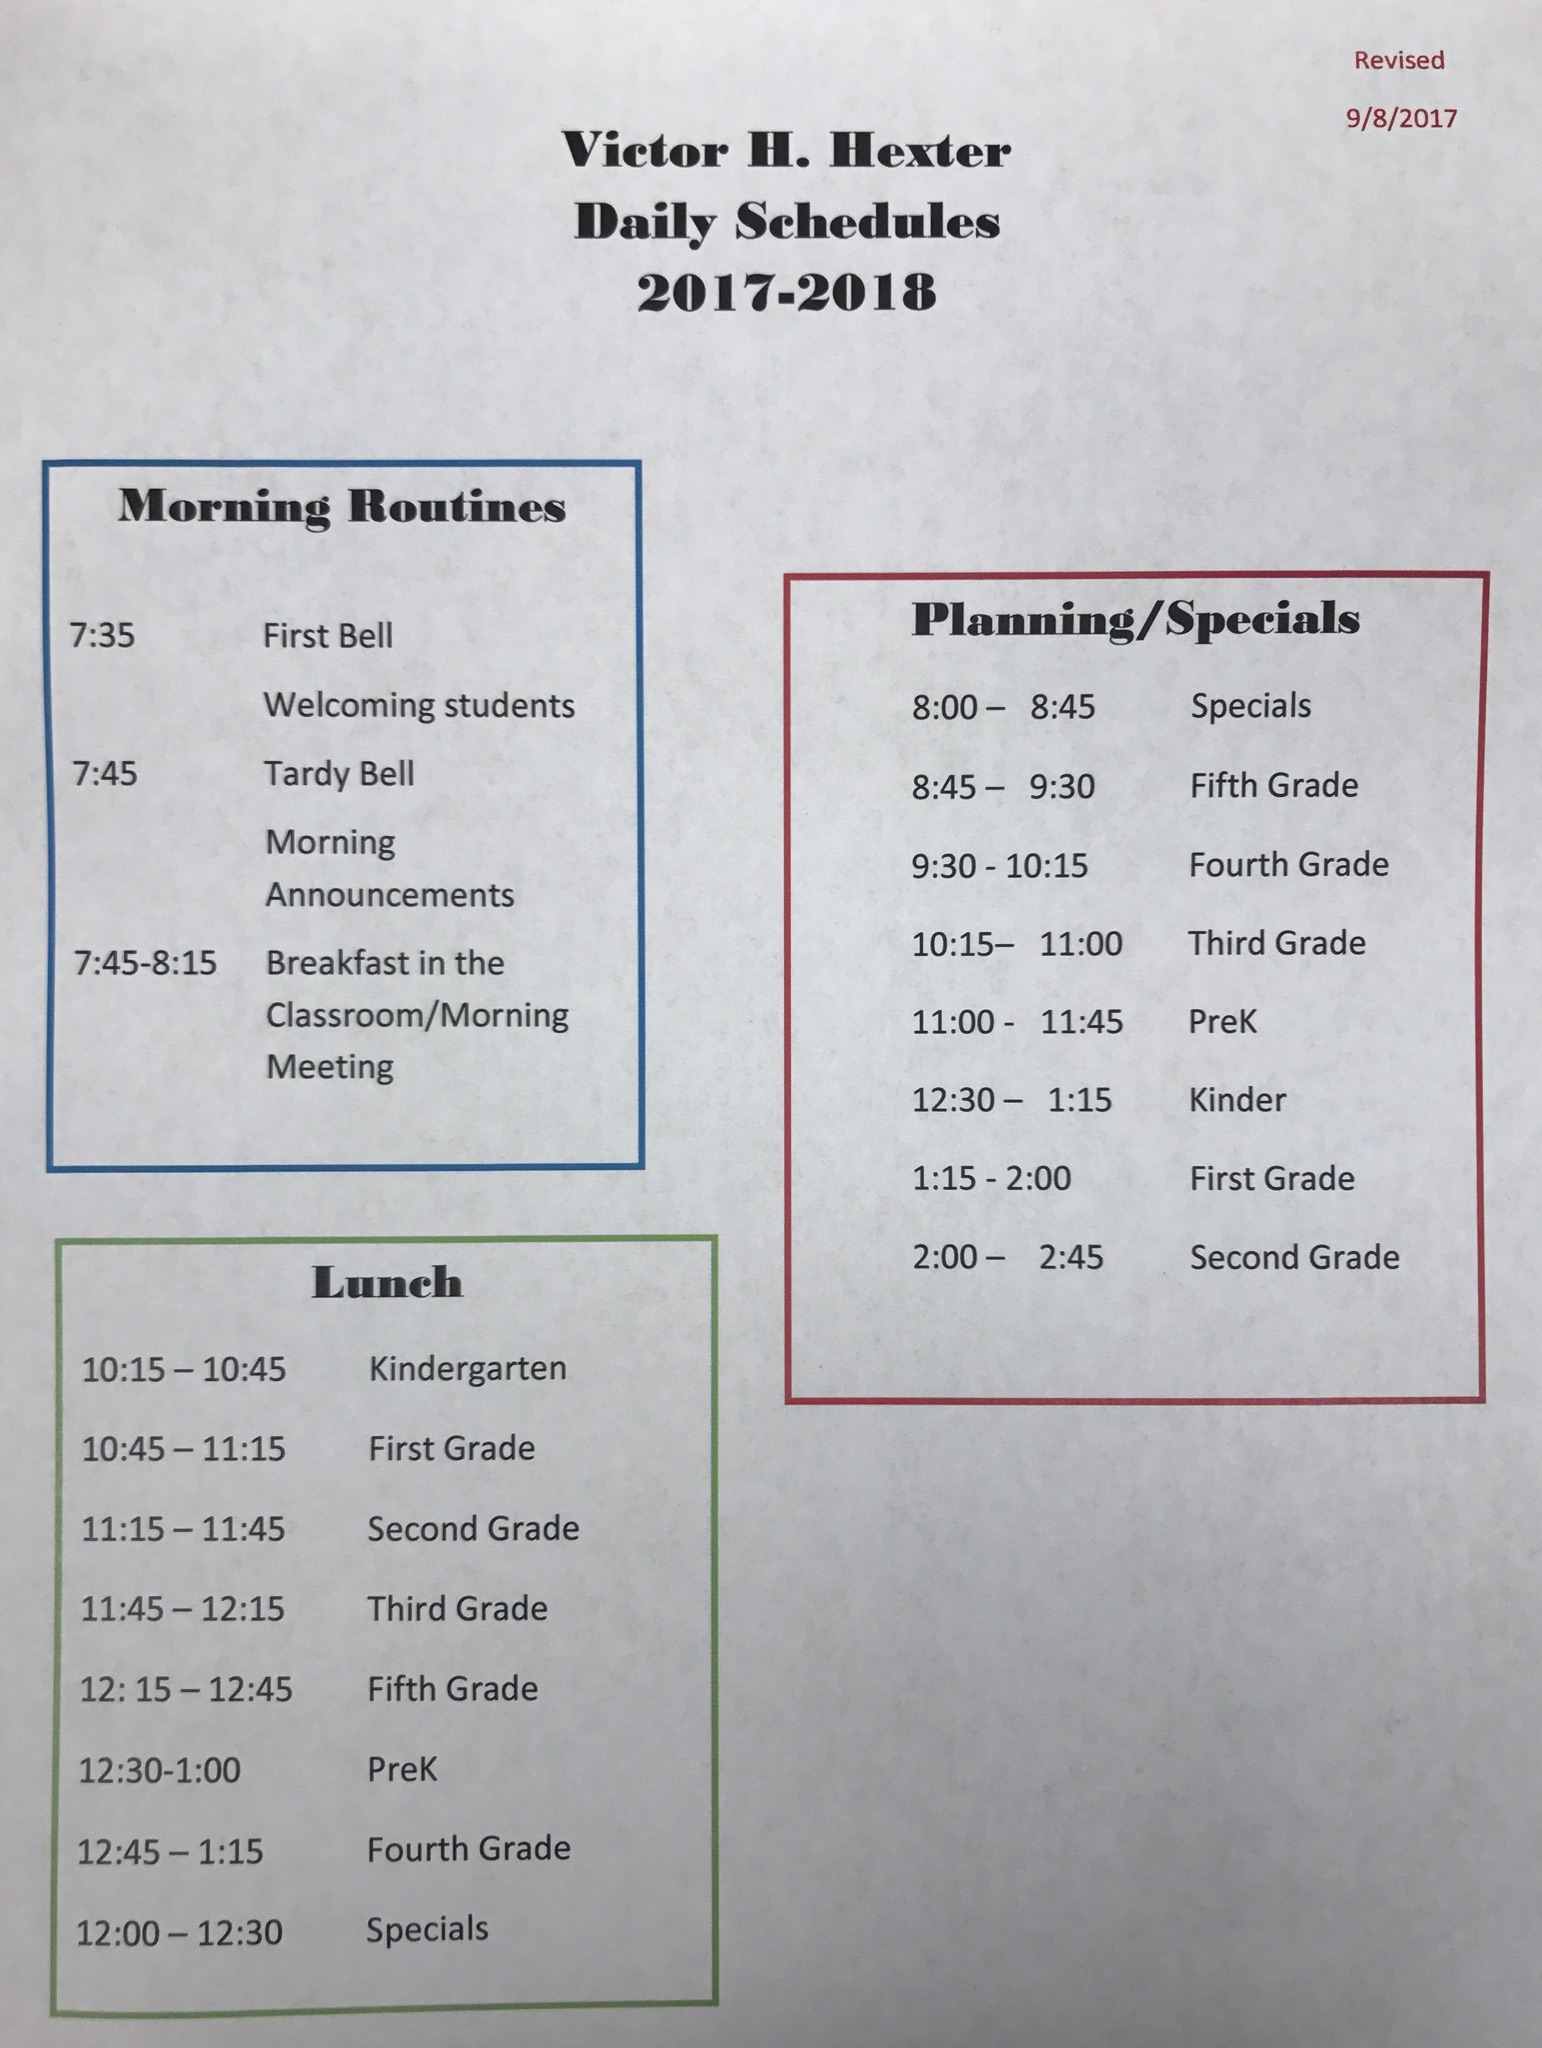 Daily Schedule 2